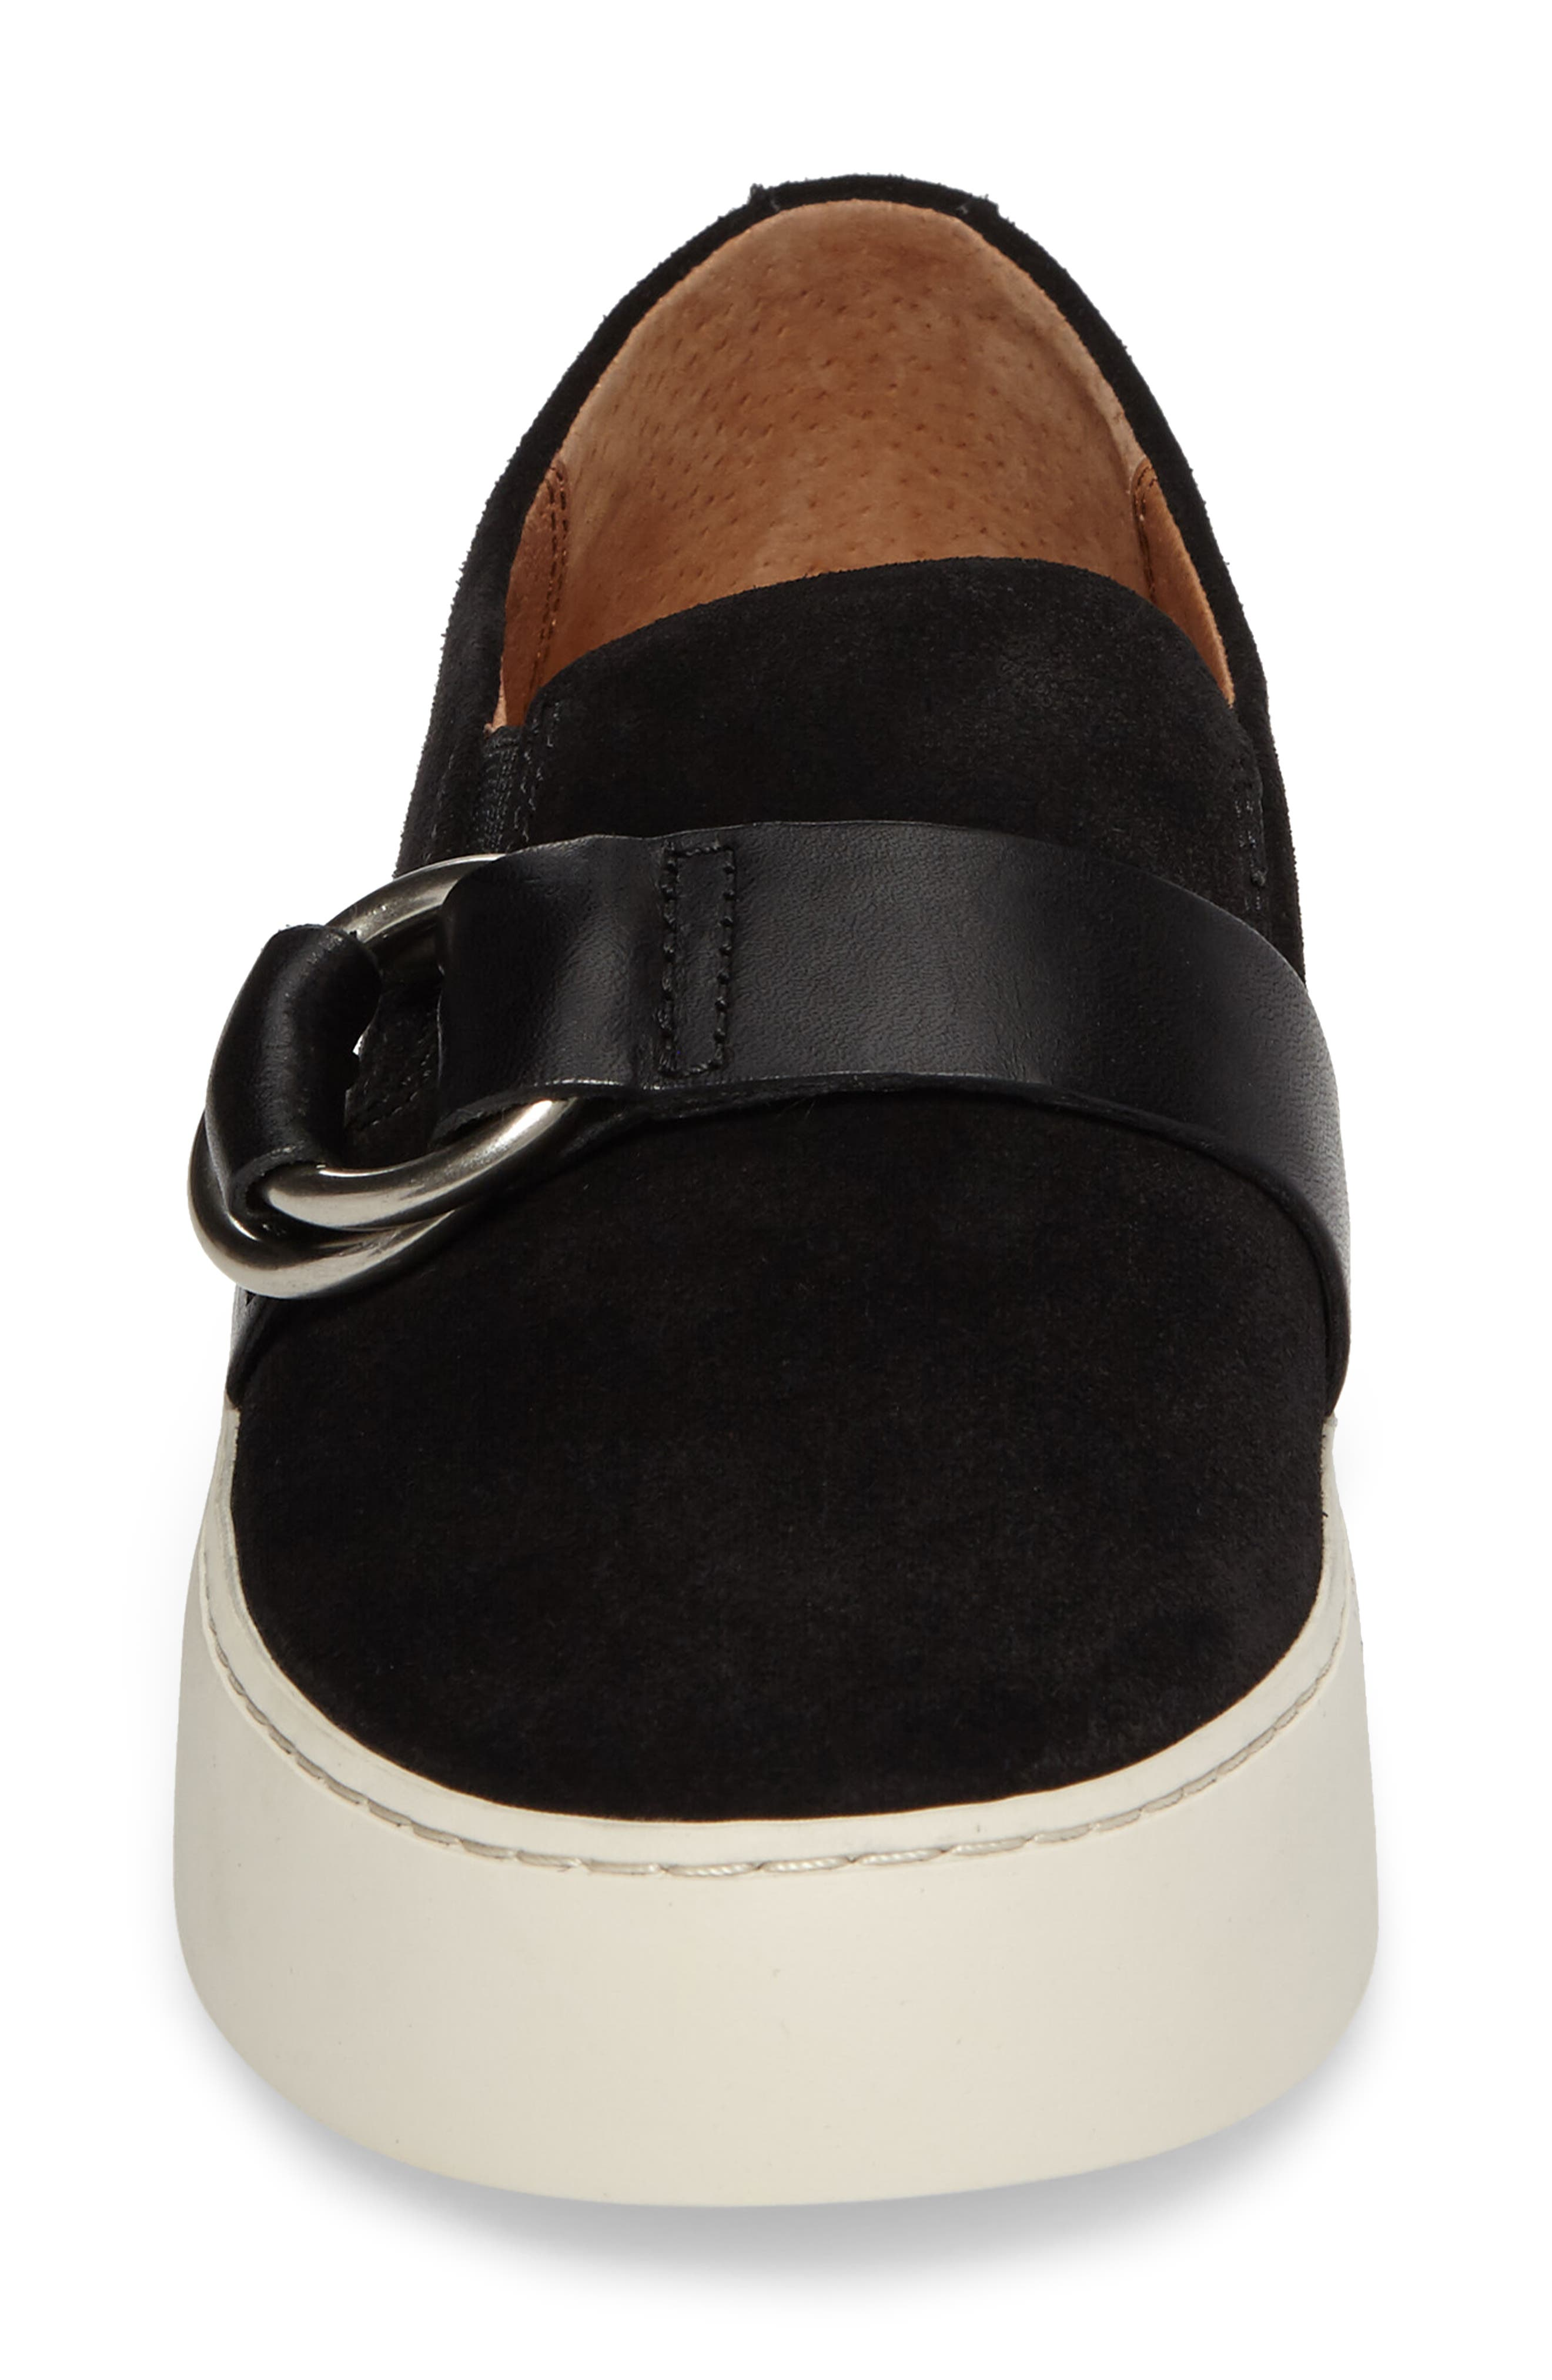 Lena Harness Slip-On Sneaker,                             Alternate thumbnail 4, color,                             001